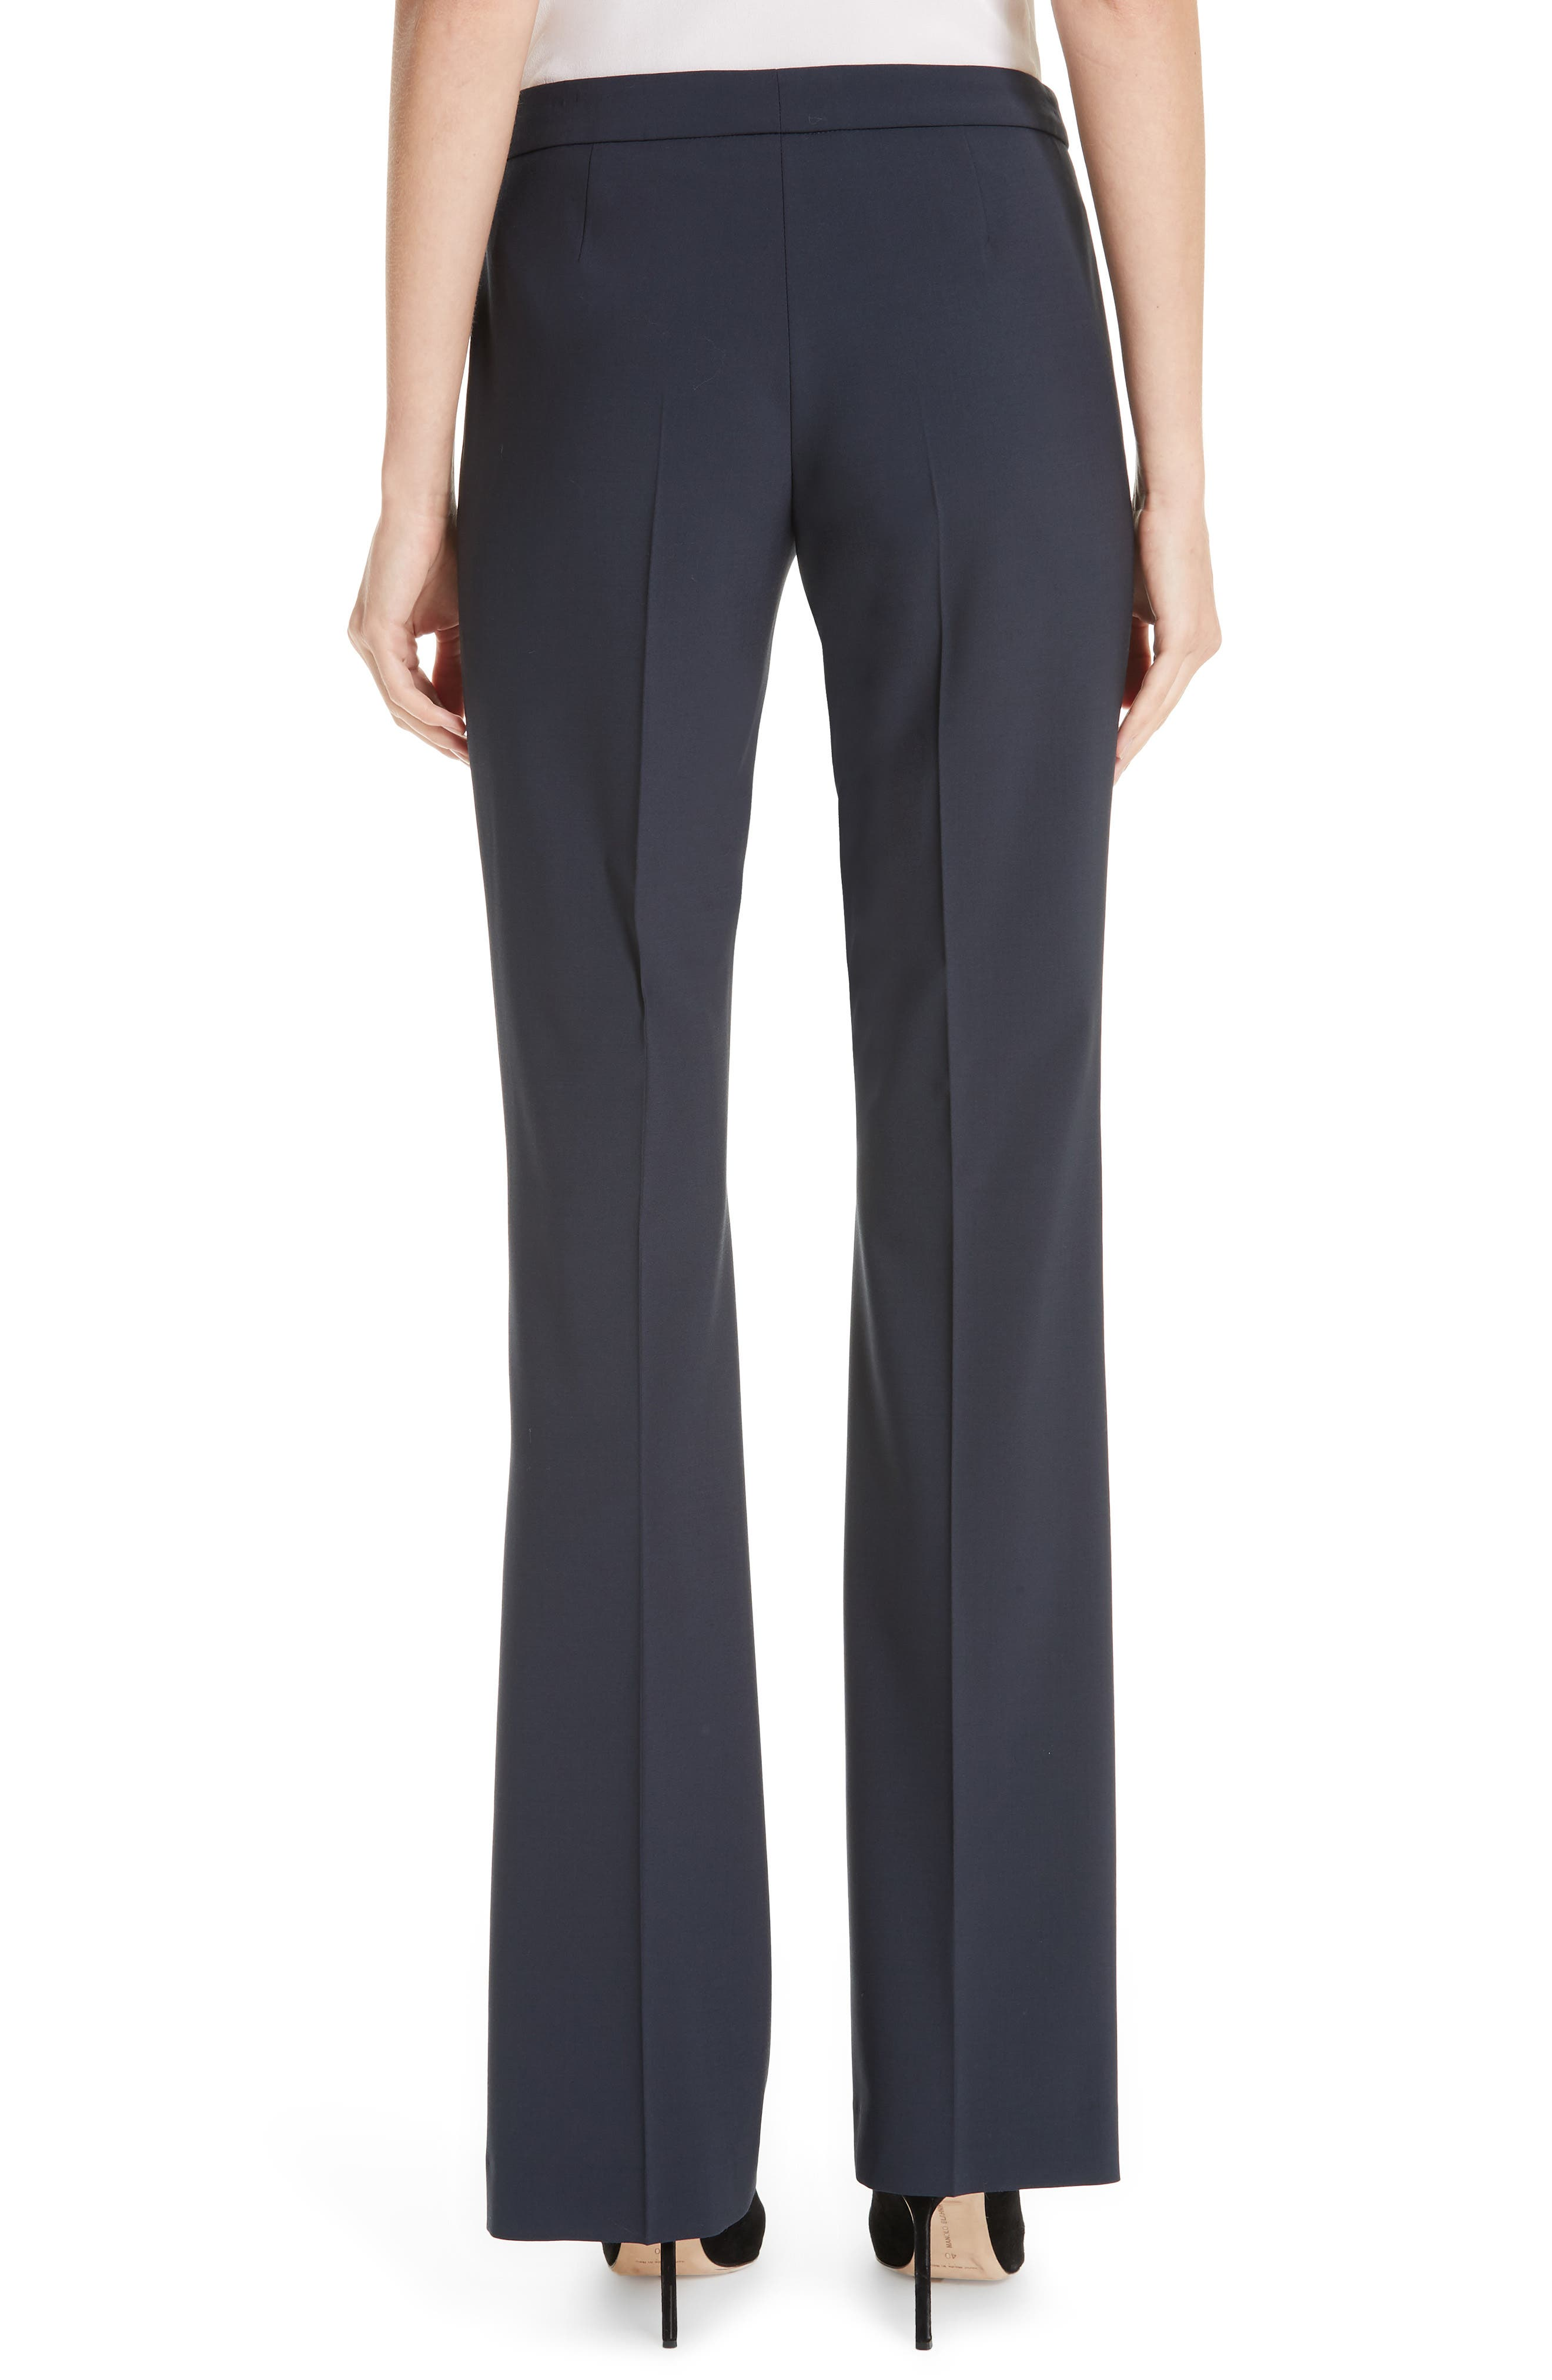 BOSS, Tulea Side Zip Tropical Stretch Wool Trousers, Alternate thumbnail 2, color, NAVY